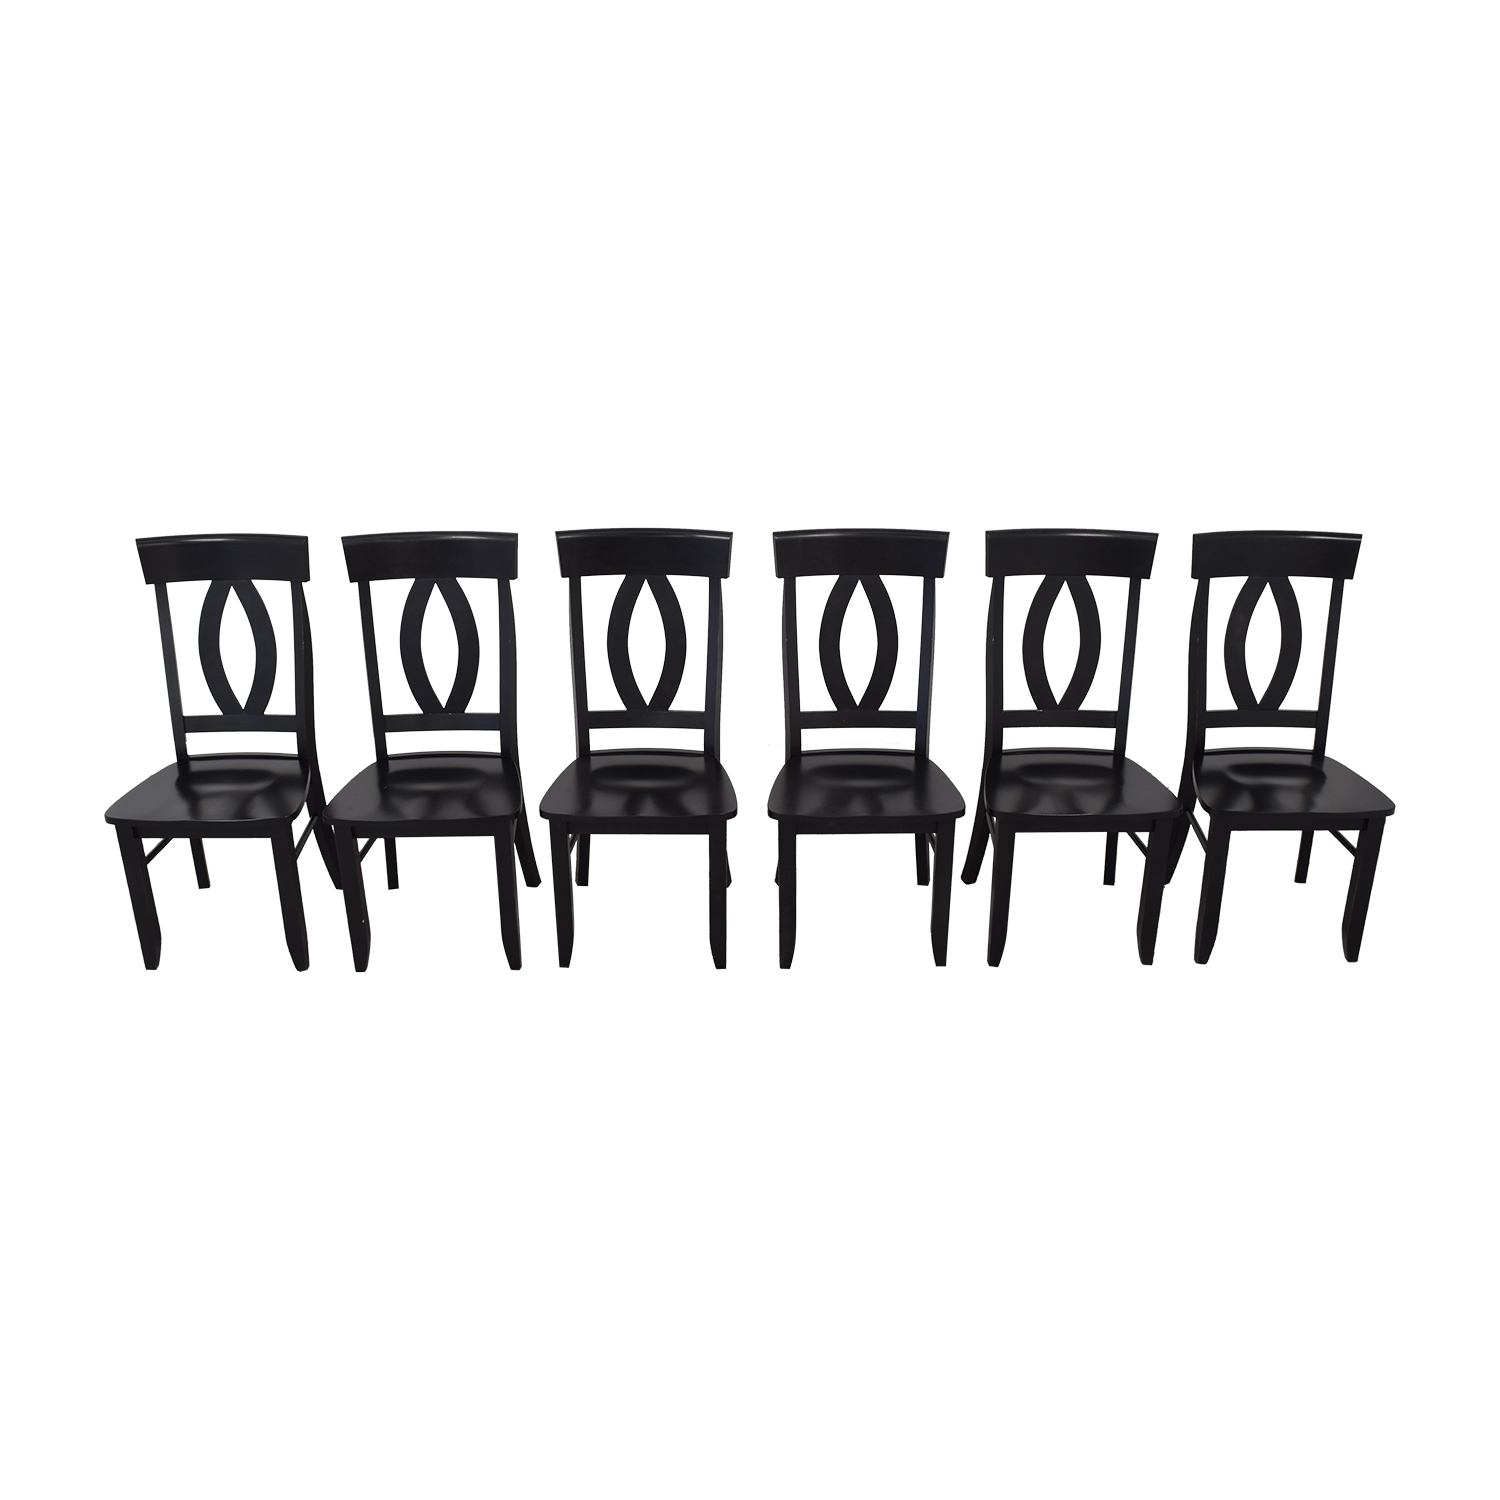 Macy's Dining Chairs / Dining Chairs